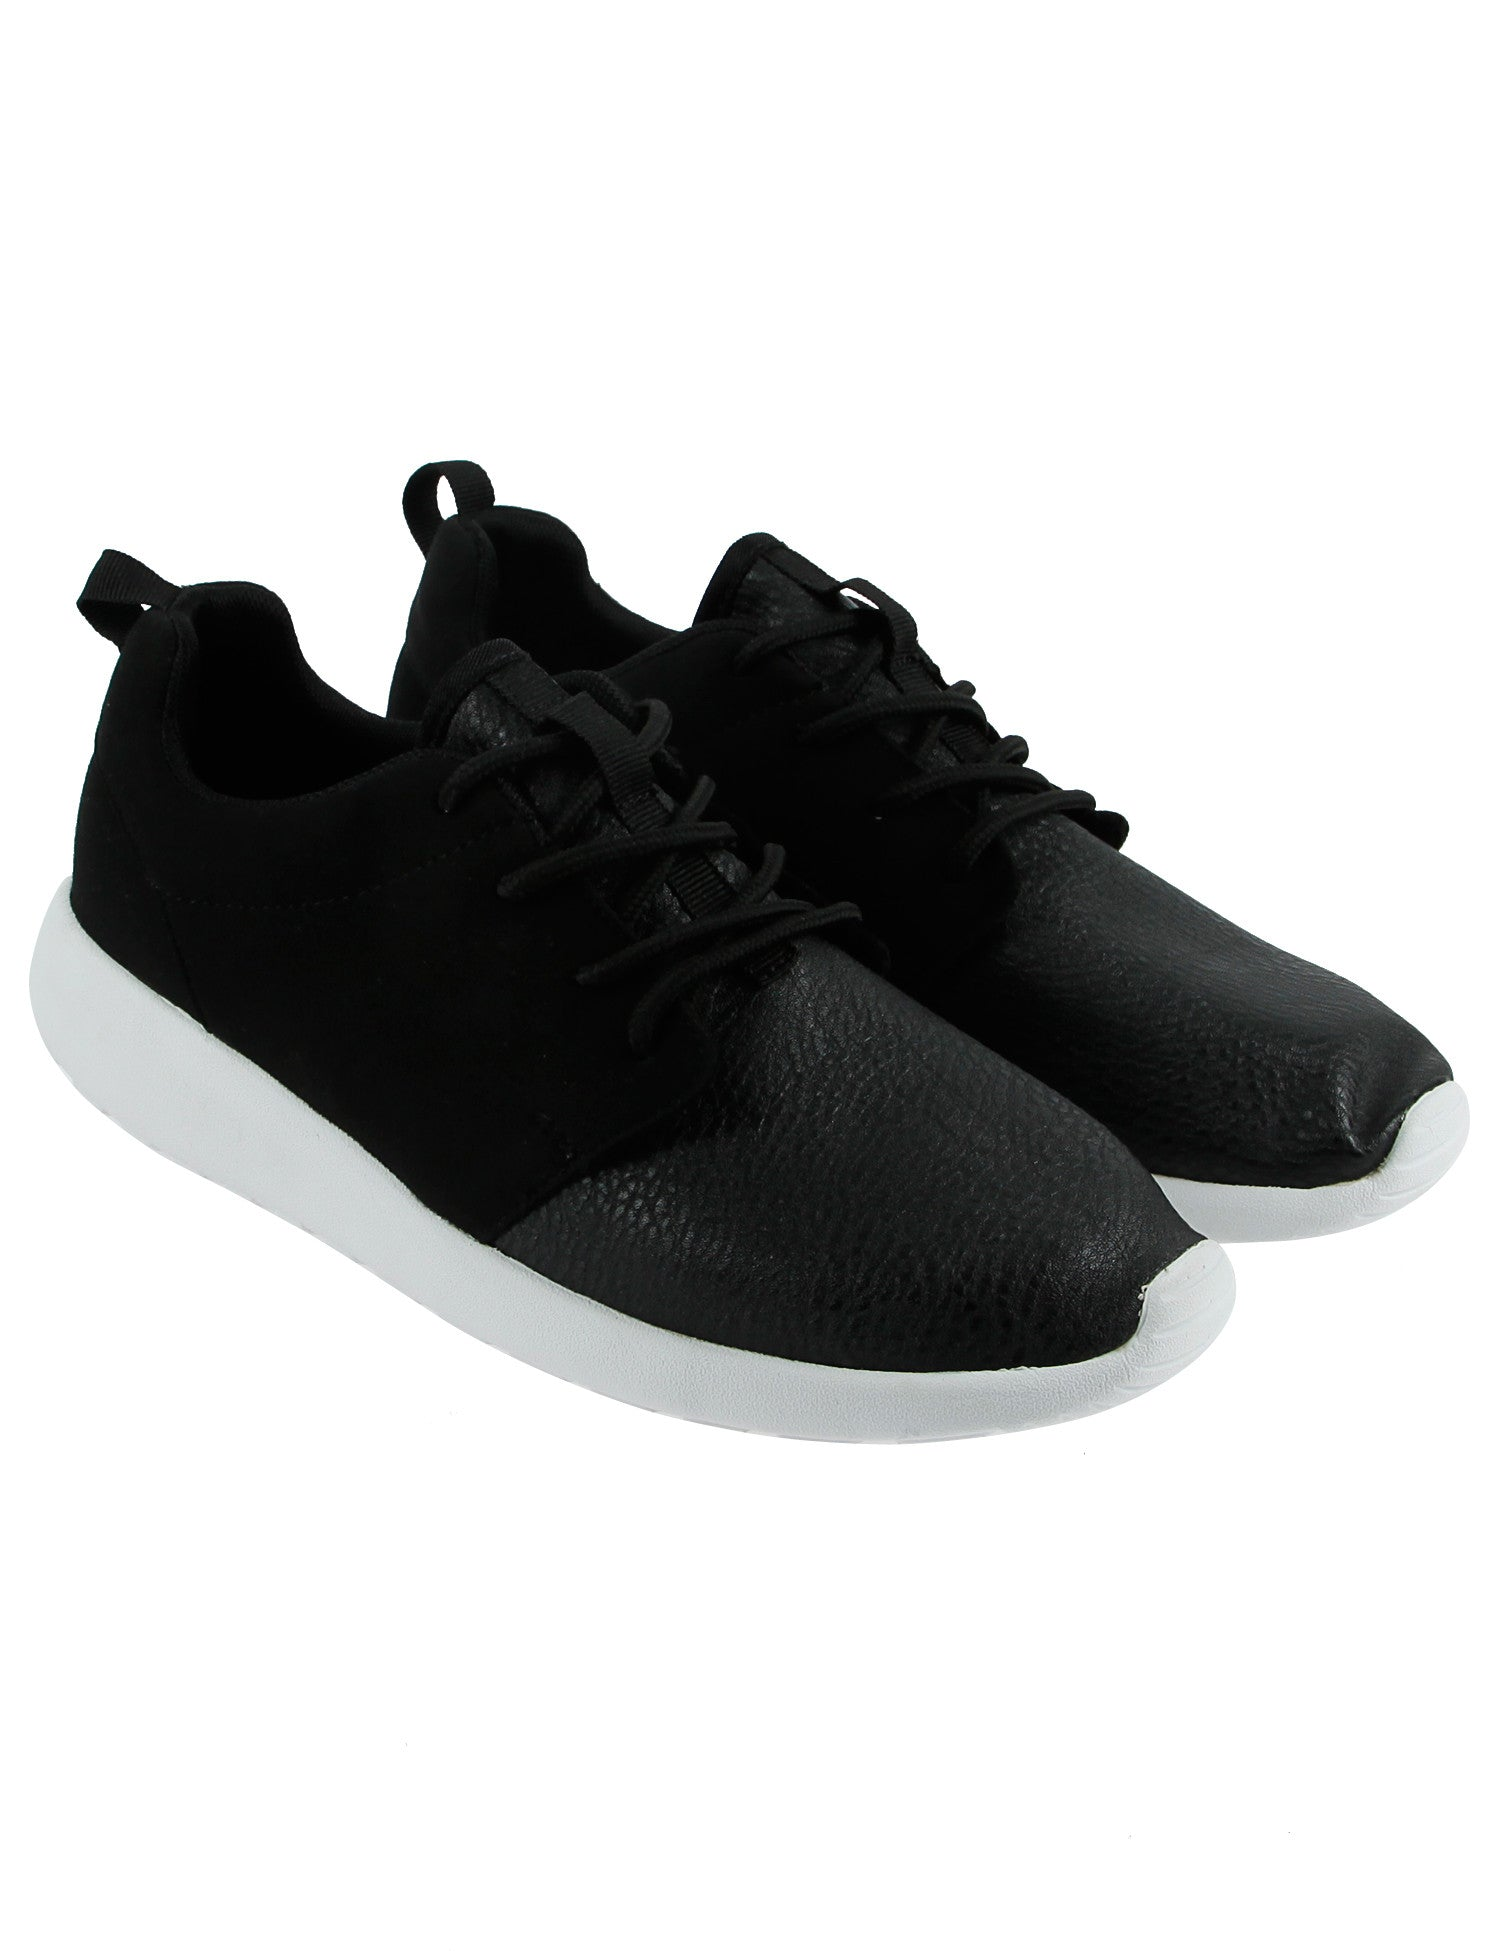 Cultz 150305 Shoes  Black